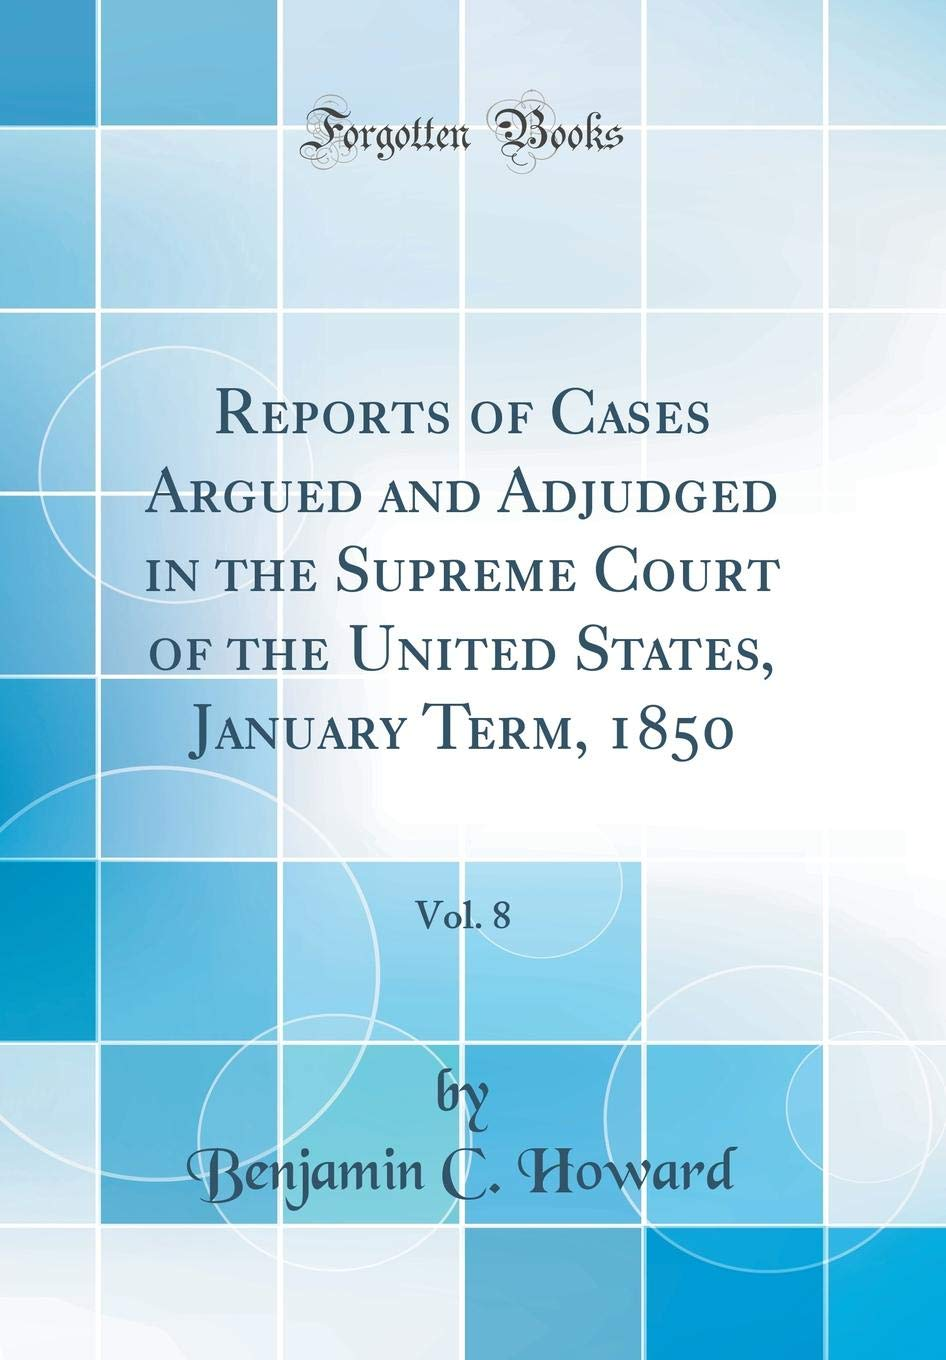 Reports of Cases Argued and Adjudged in the Supreme Court of the United States, January Term, 1850, Vol. 8 (Classic Reprint) PDF